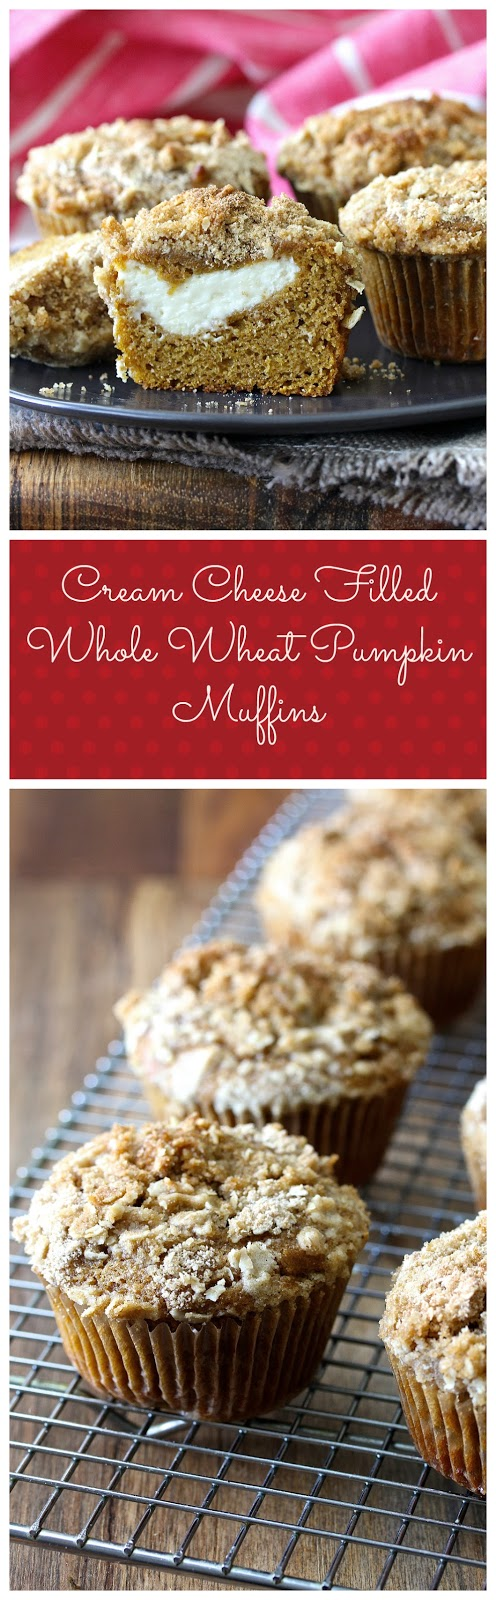 Cream Cheese Filled Whole Wheat Pumpkin Muffins